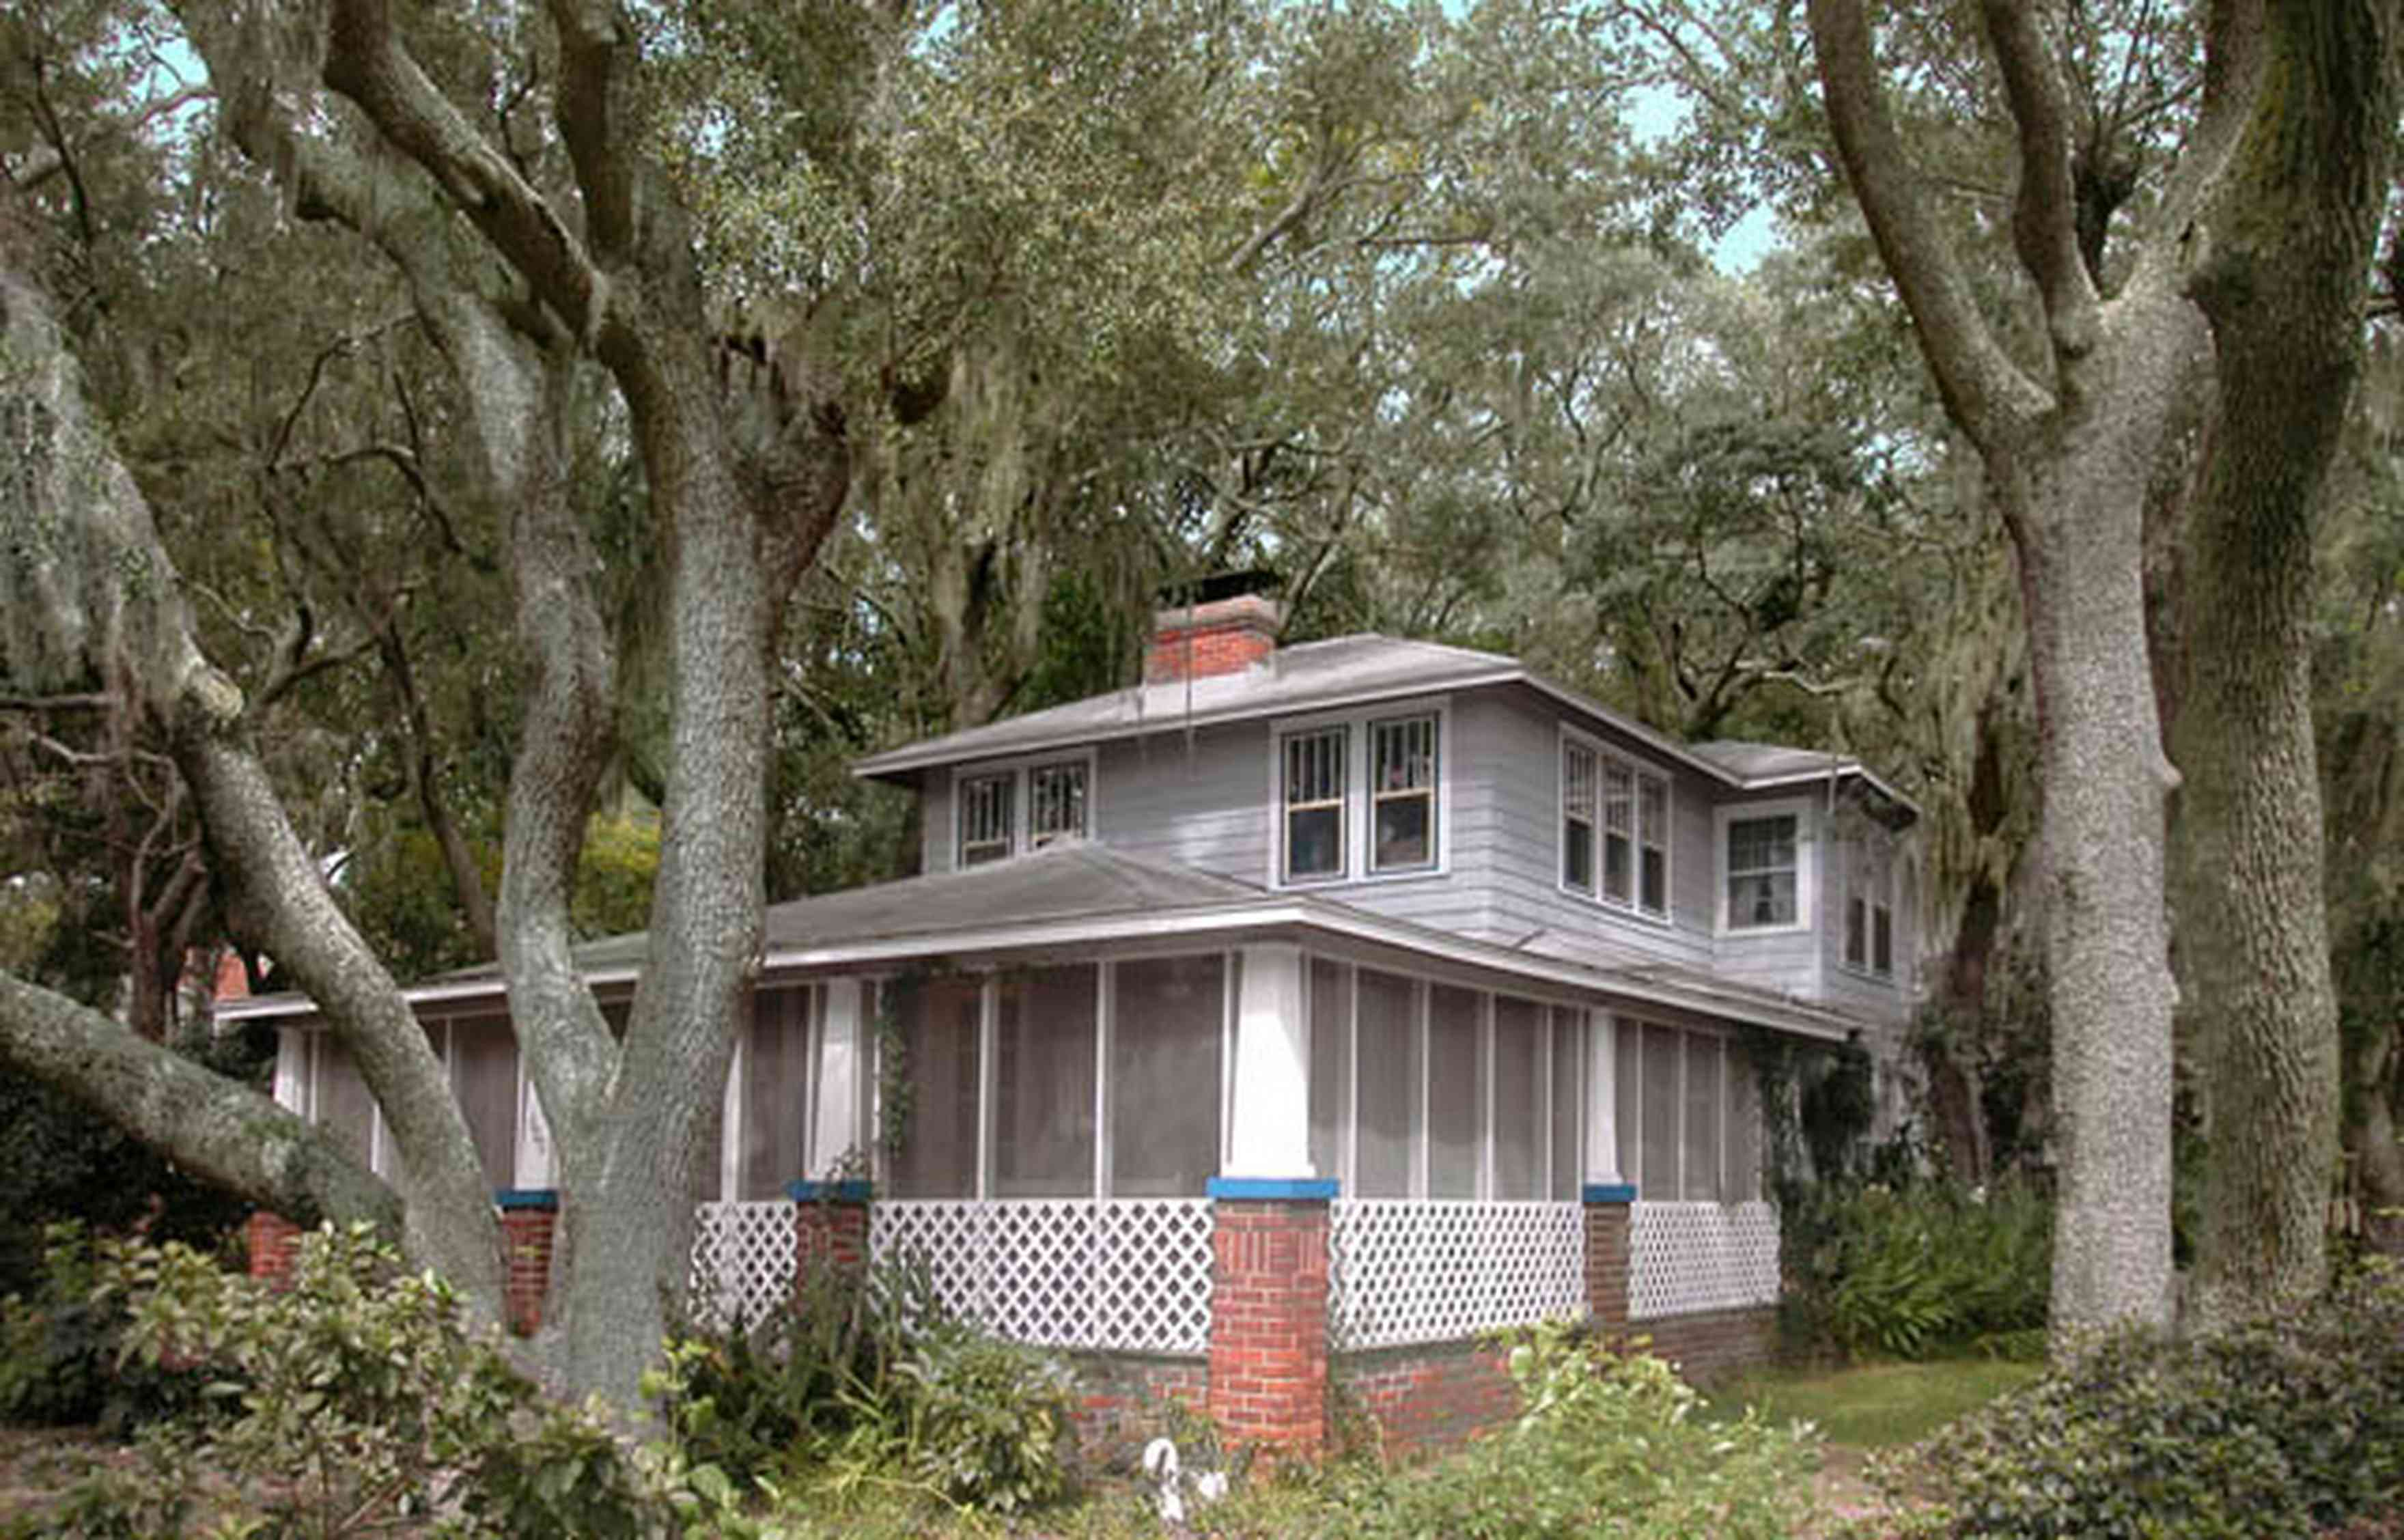 East-Pensacola-Heights:-600-Bayou-Blvd_01.jpg:  live oak trees, spanish moss, azelea bushes, brick pillars, bungalow style,